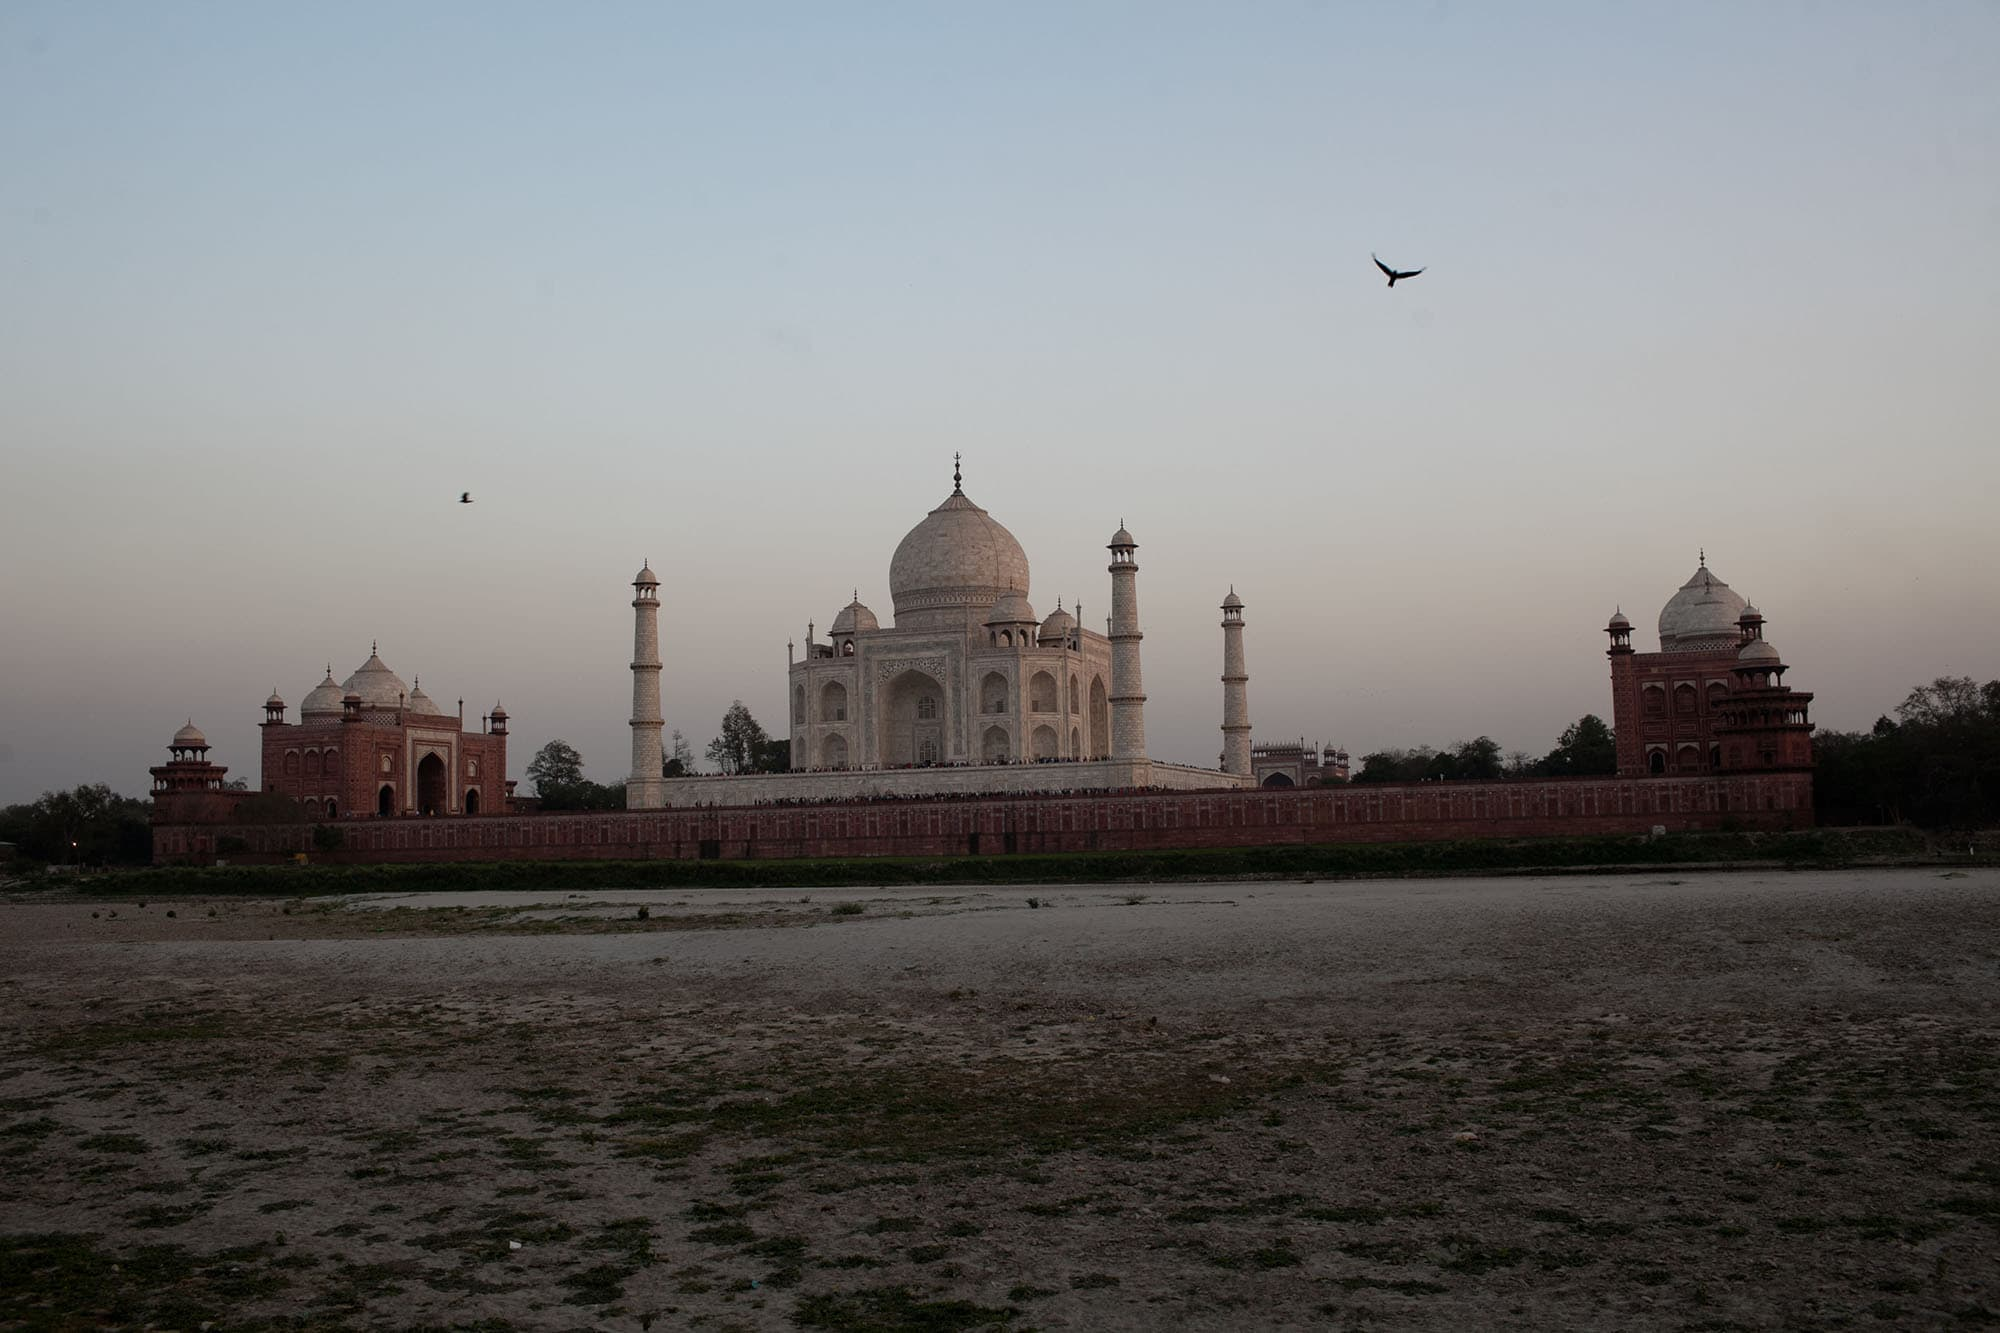 Sunset at the Taj Mahal in Agra, India